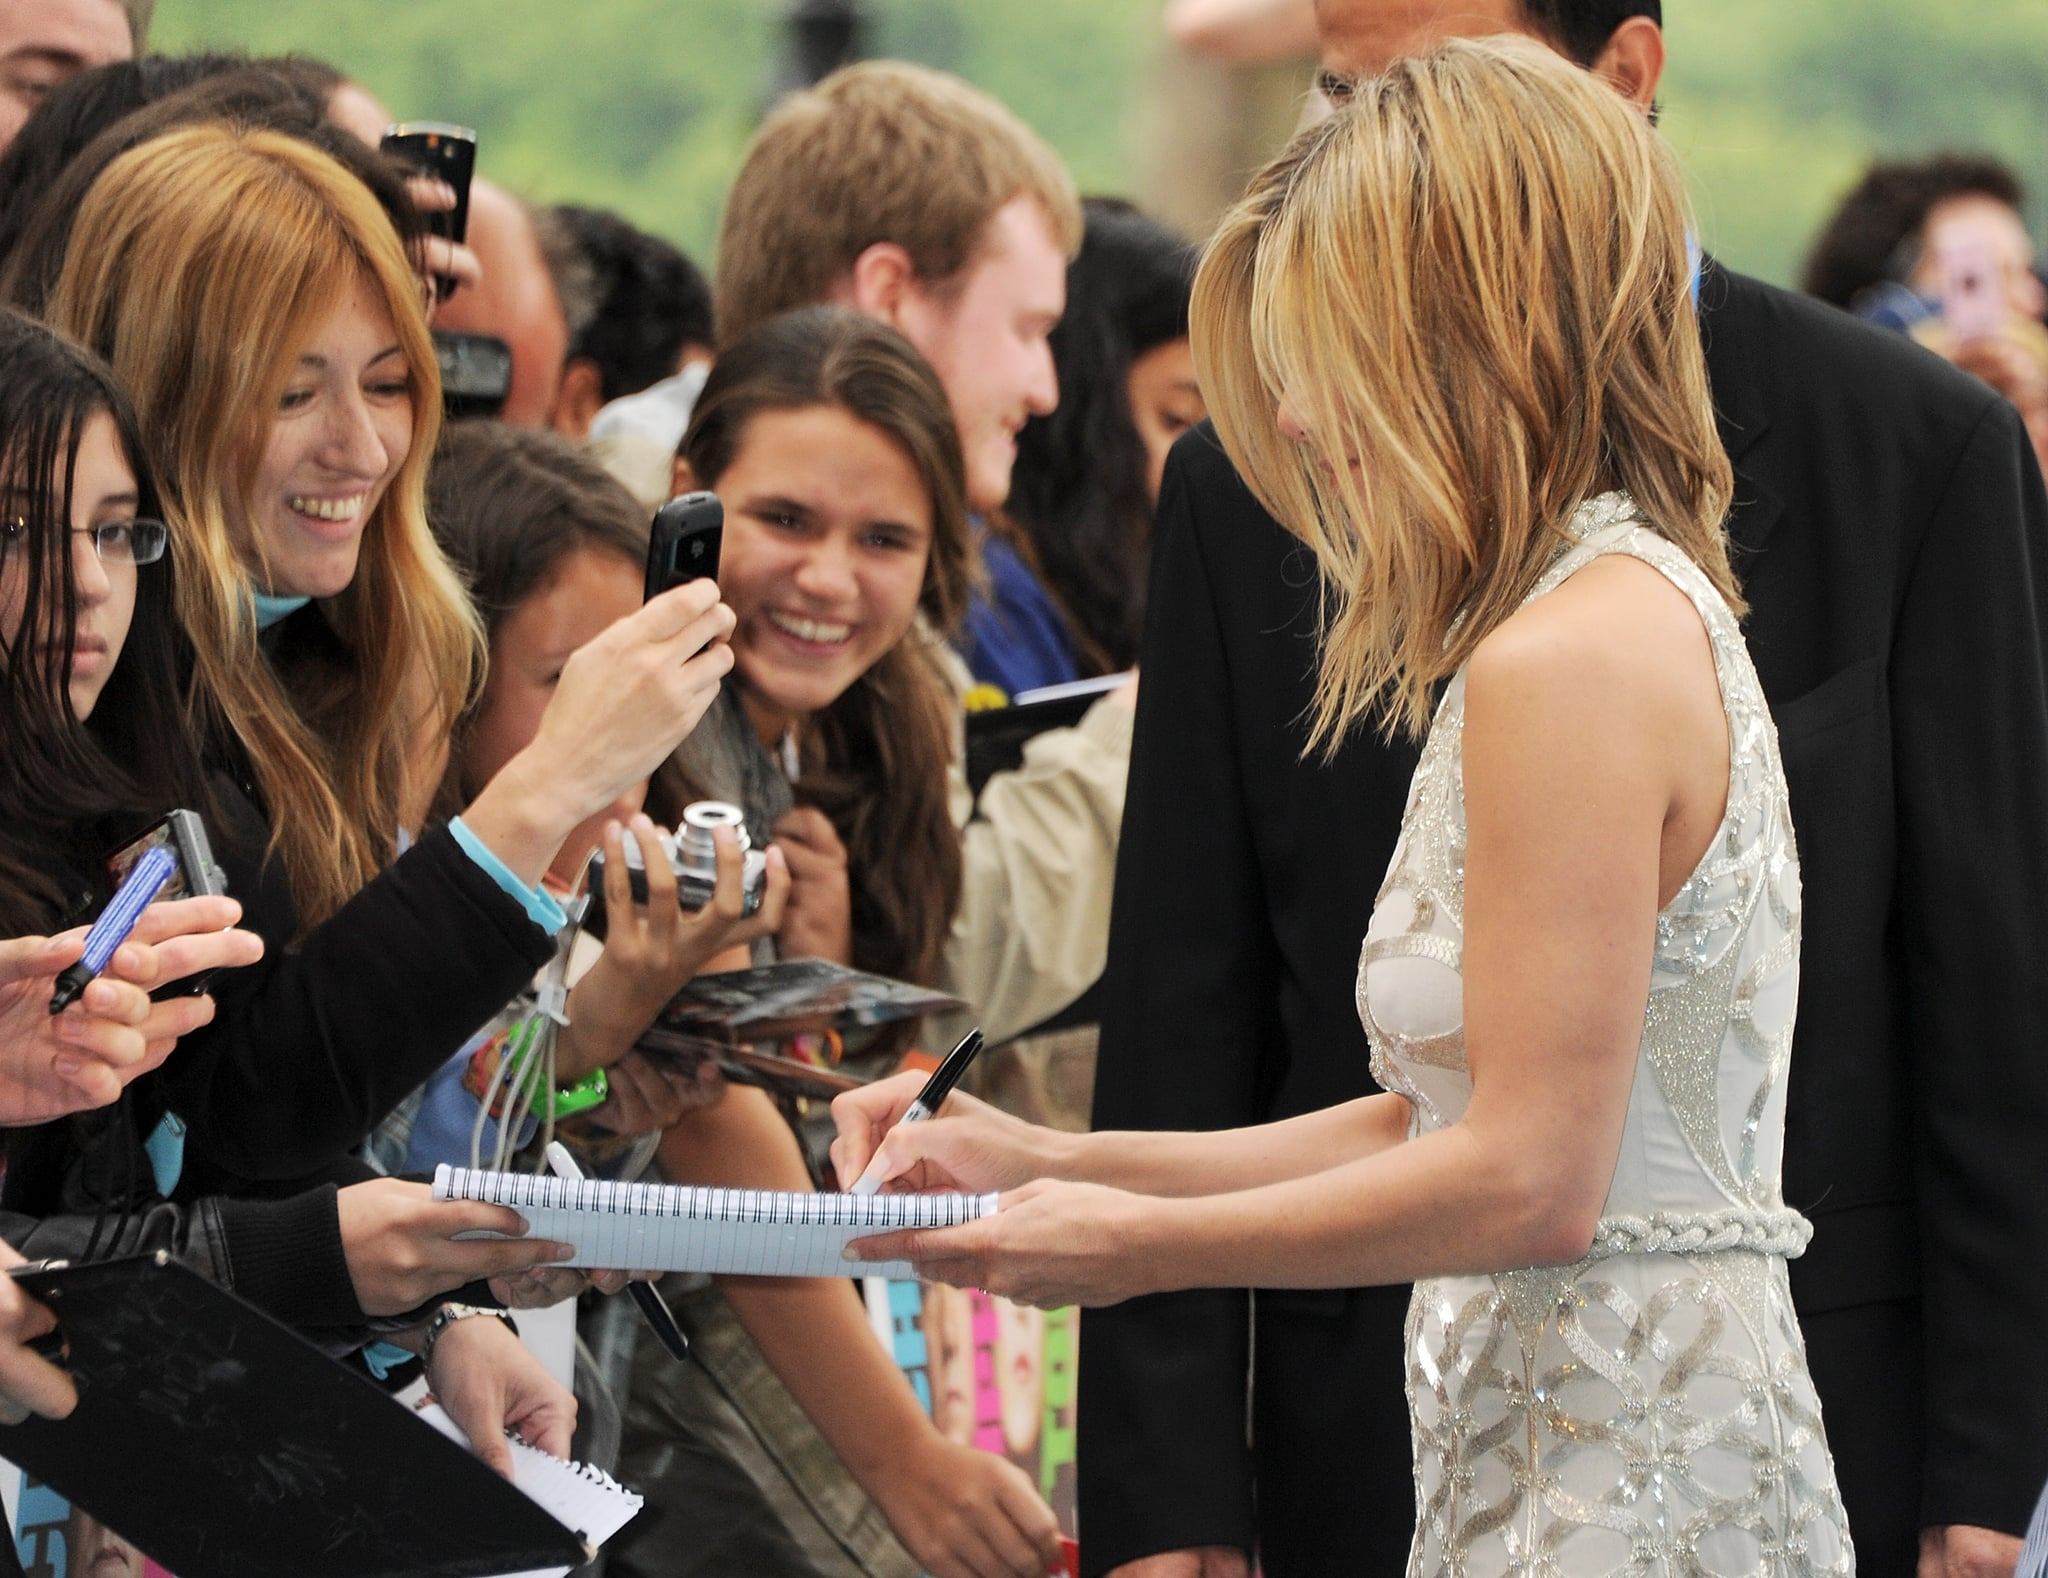 Jennifer Aniston signs autographs at the London premiere of Horrible Bosses.